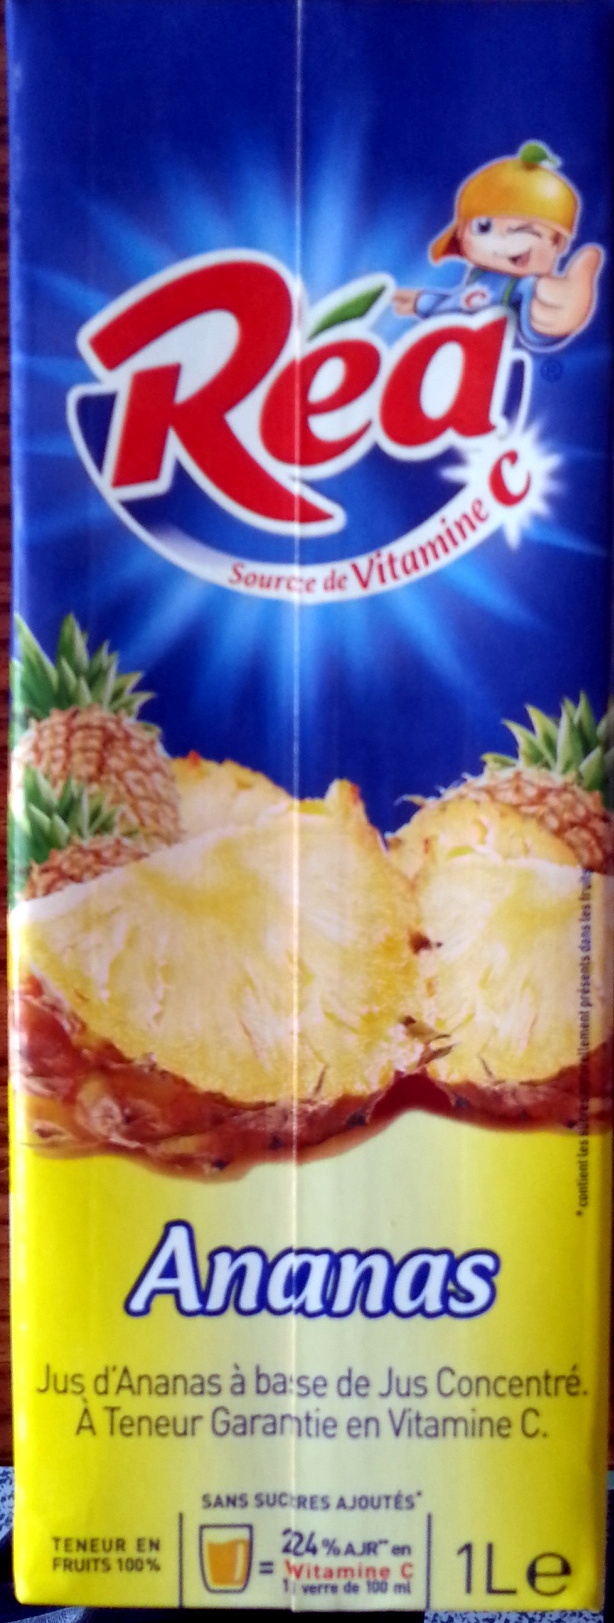 Ananas 1 litre - Réa - Producto